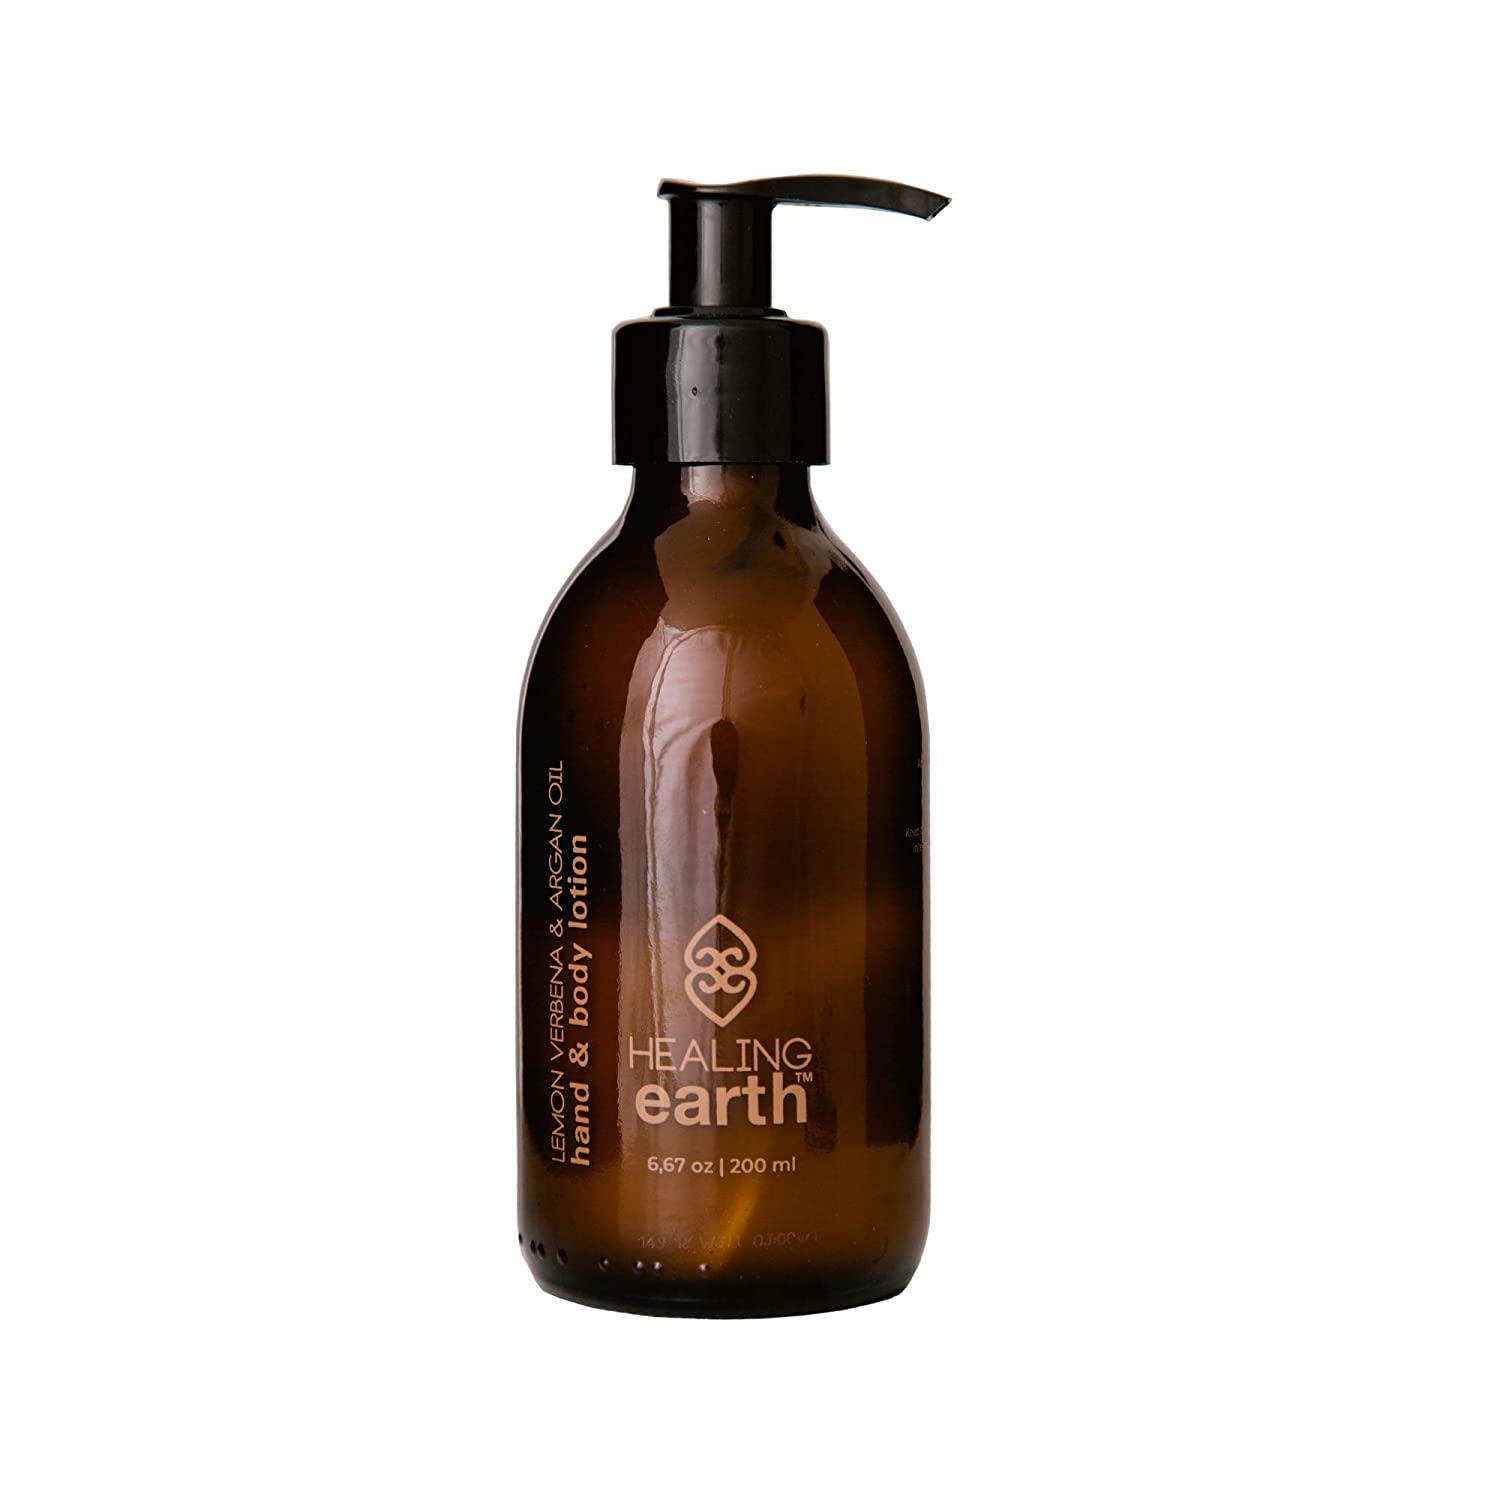 Healing Earth Lemon Verbena Max 60% OFF Hand Lotion 6.67 Body and 100% quality warranty Ounces